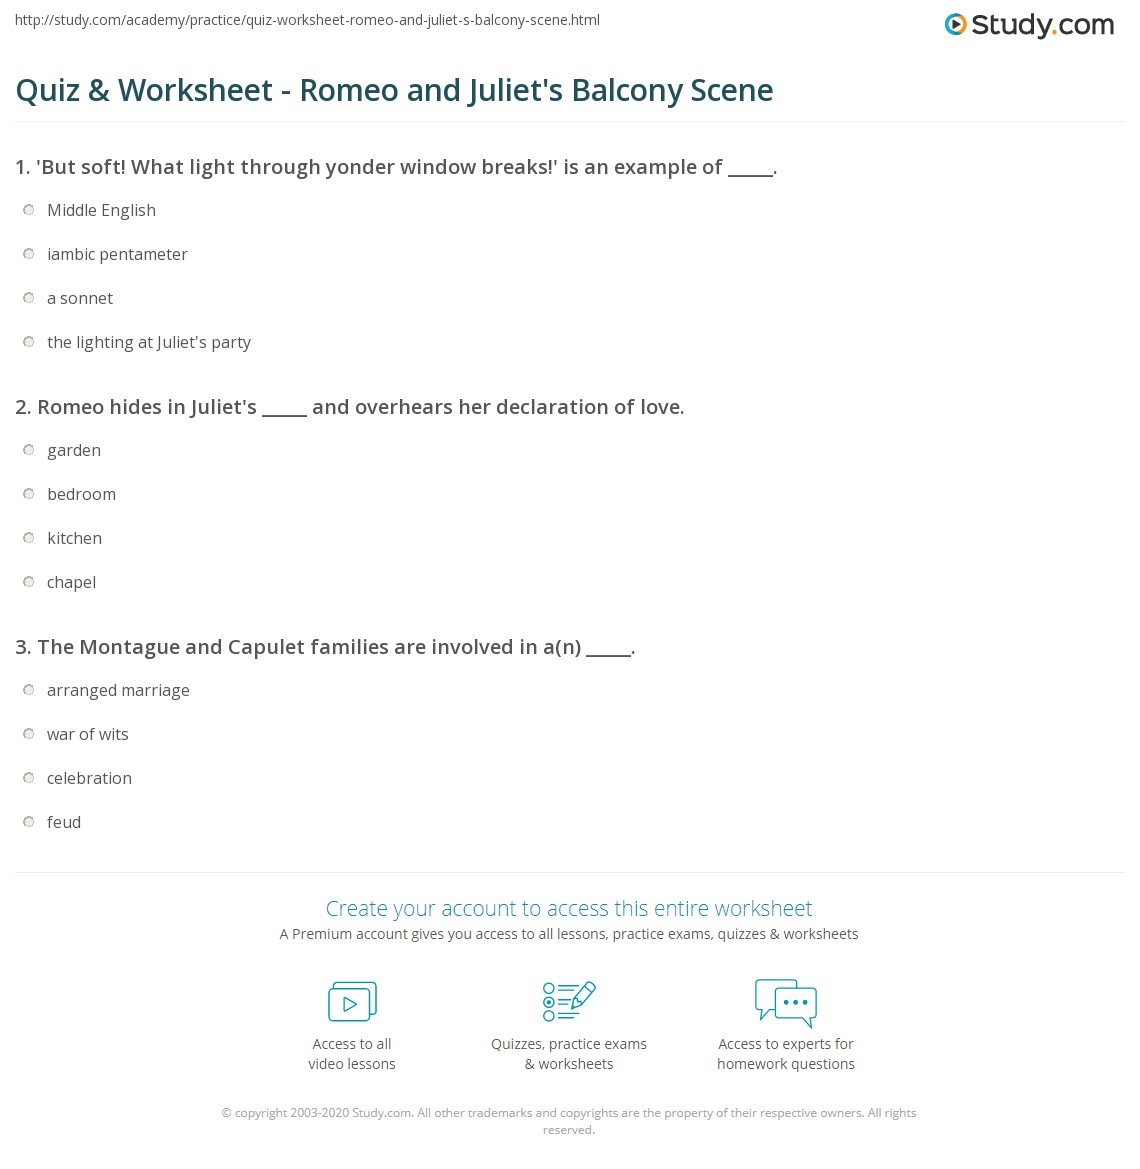 Romeo And Juliet Quotes And Meanings Quiz & Worksheet  Romeo And Juliet's Balcony Scene  Study